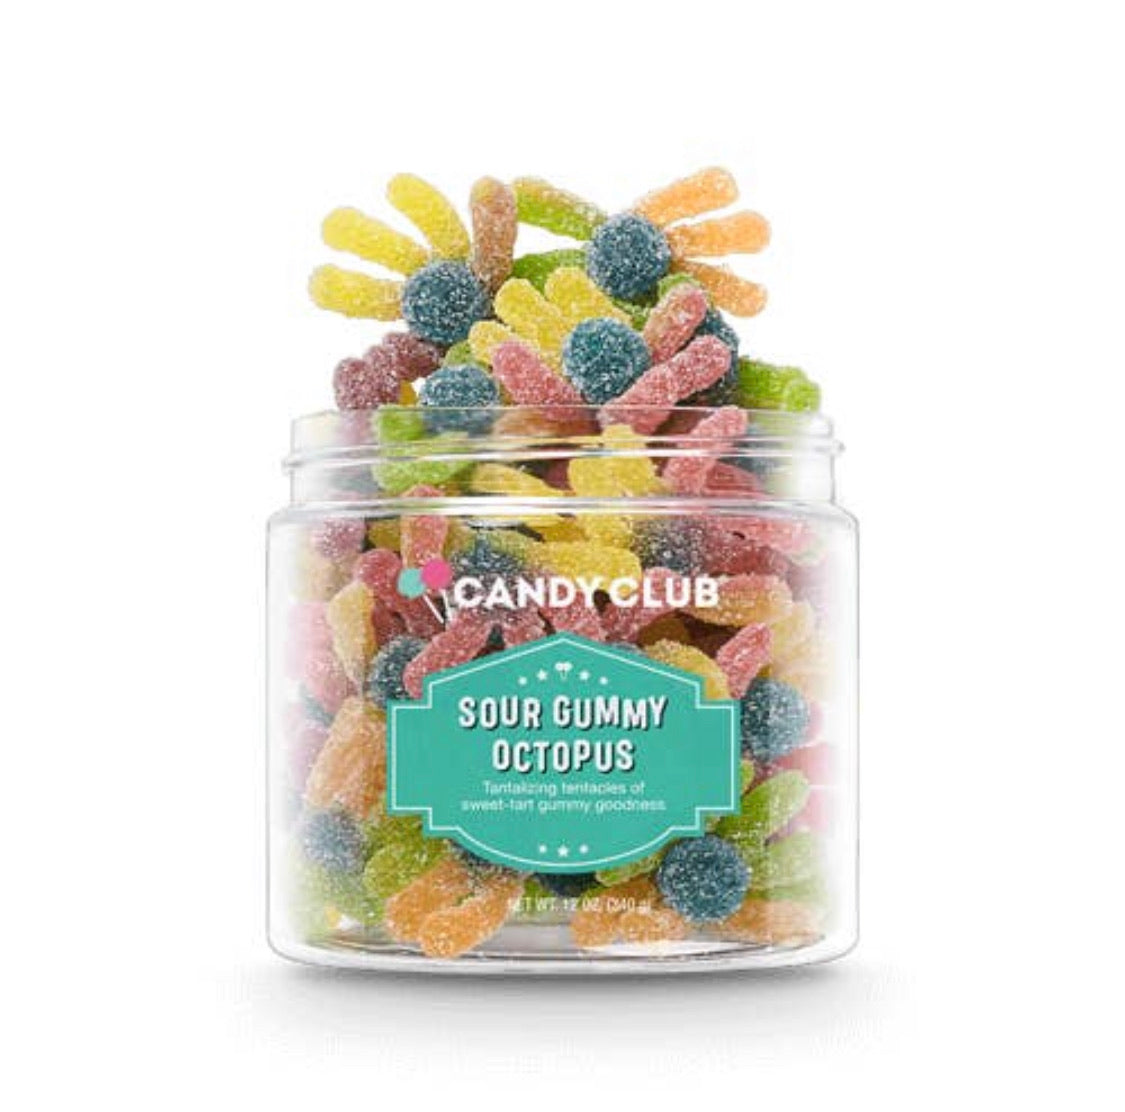 Sour Gummy Octopus